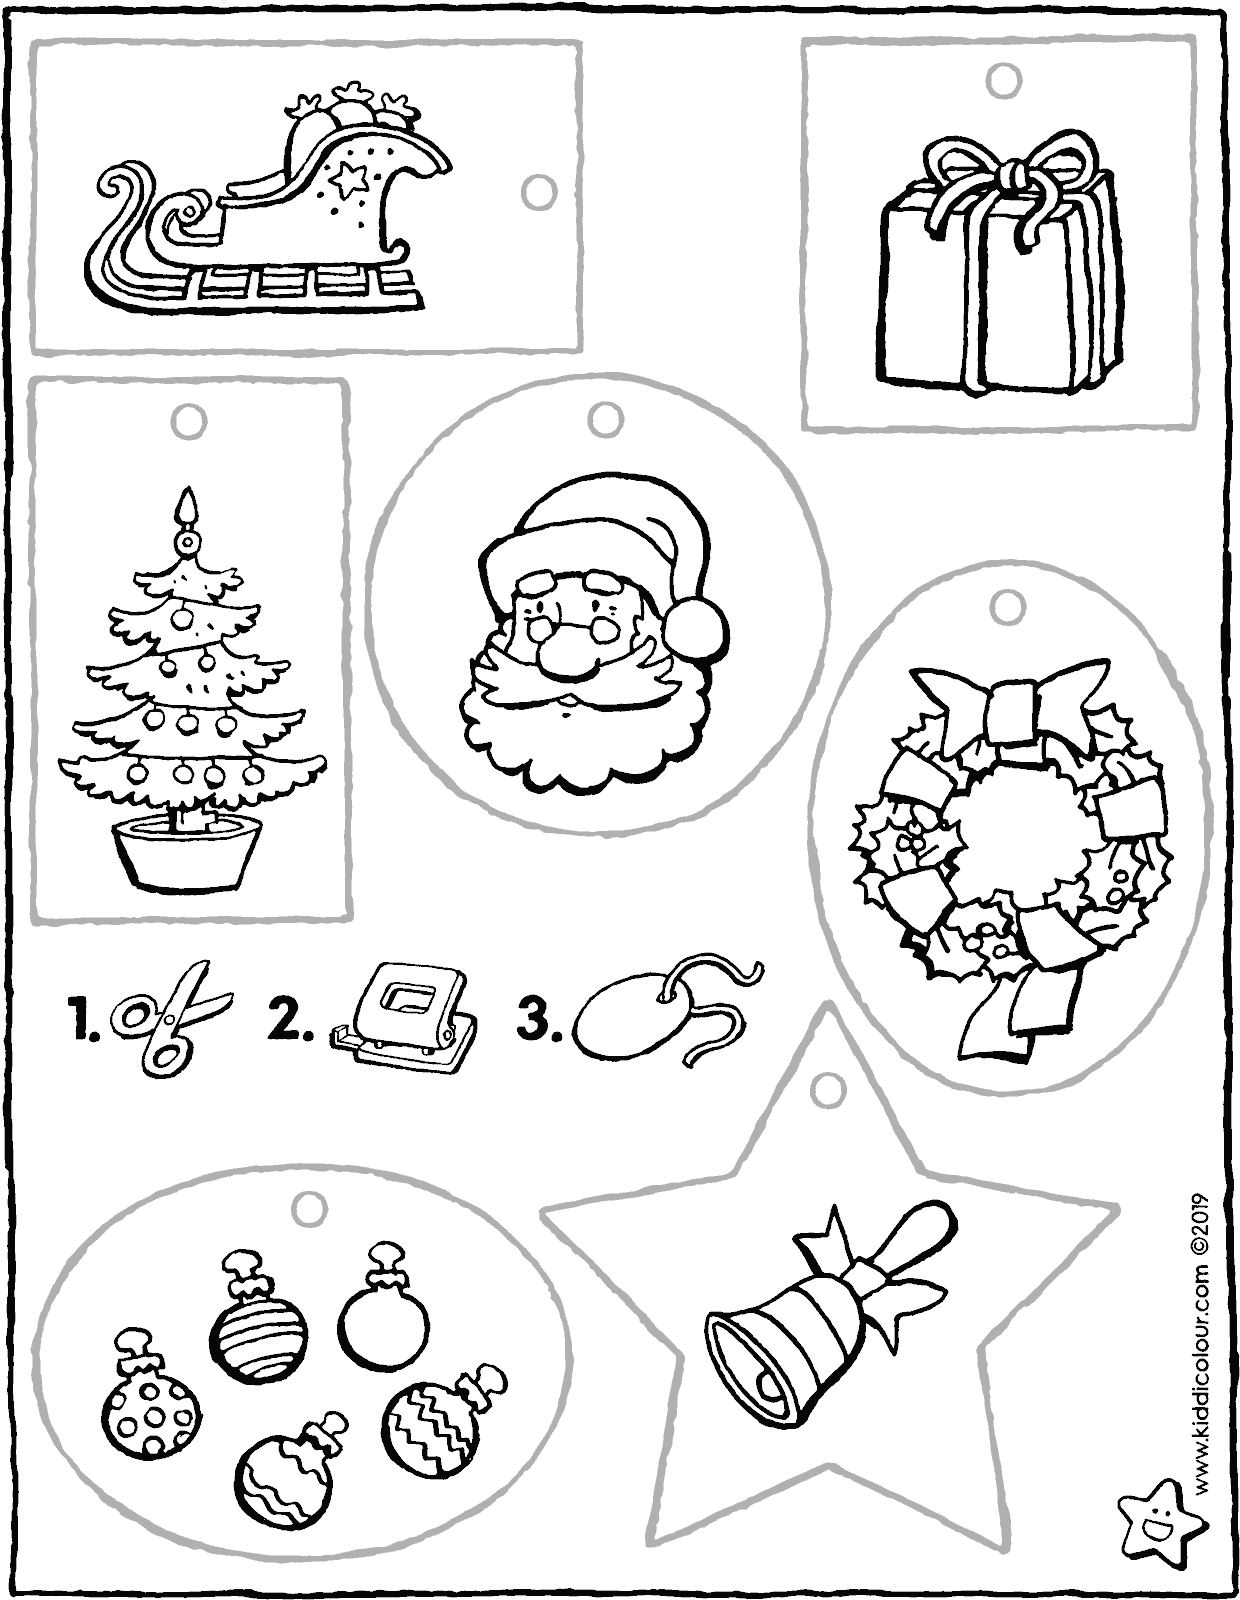 Christmas gift tags colouring page drawing picture 01V